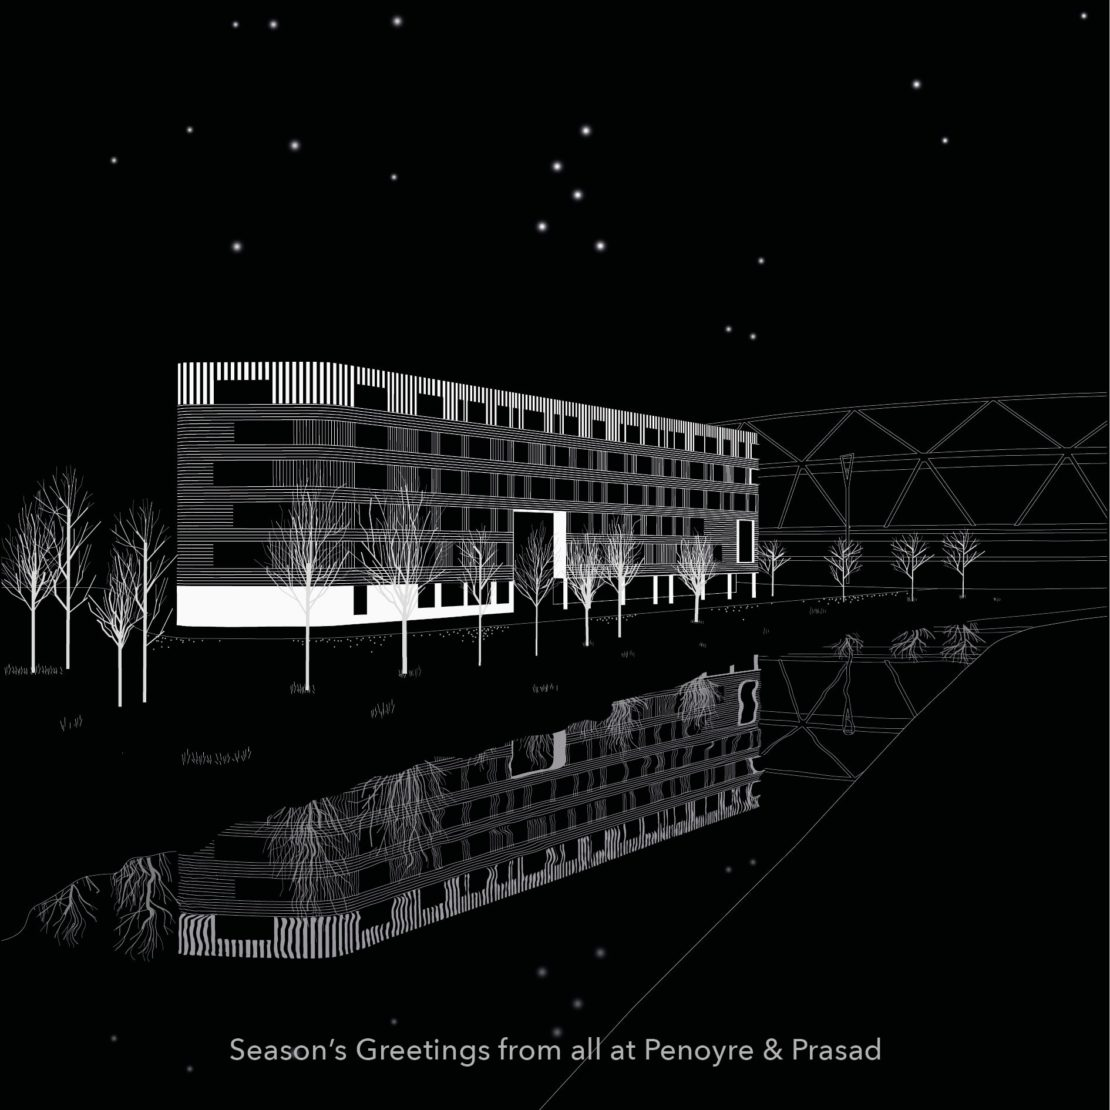 Best wishes from Penoyre & Prasad